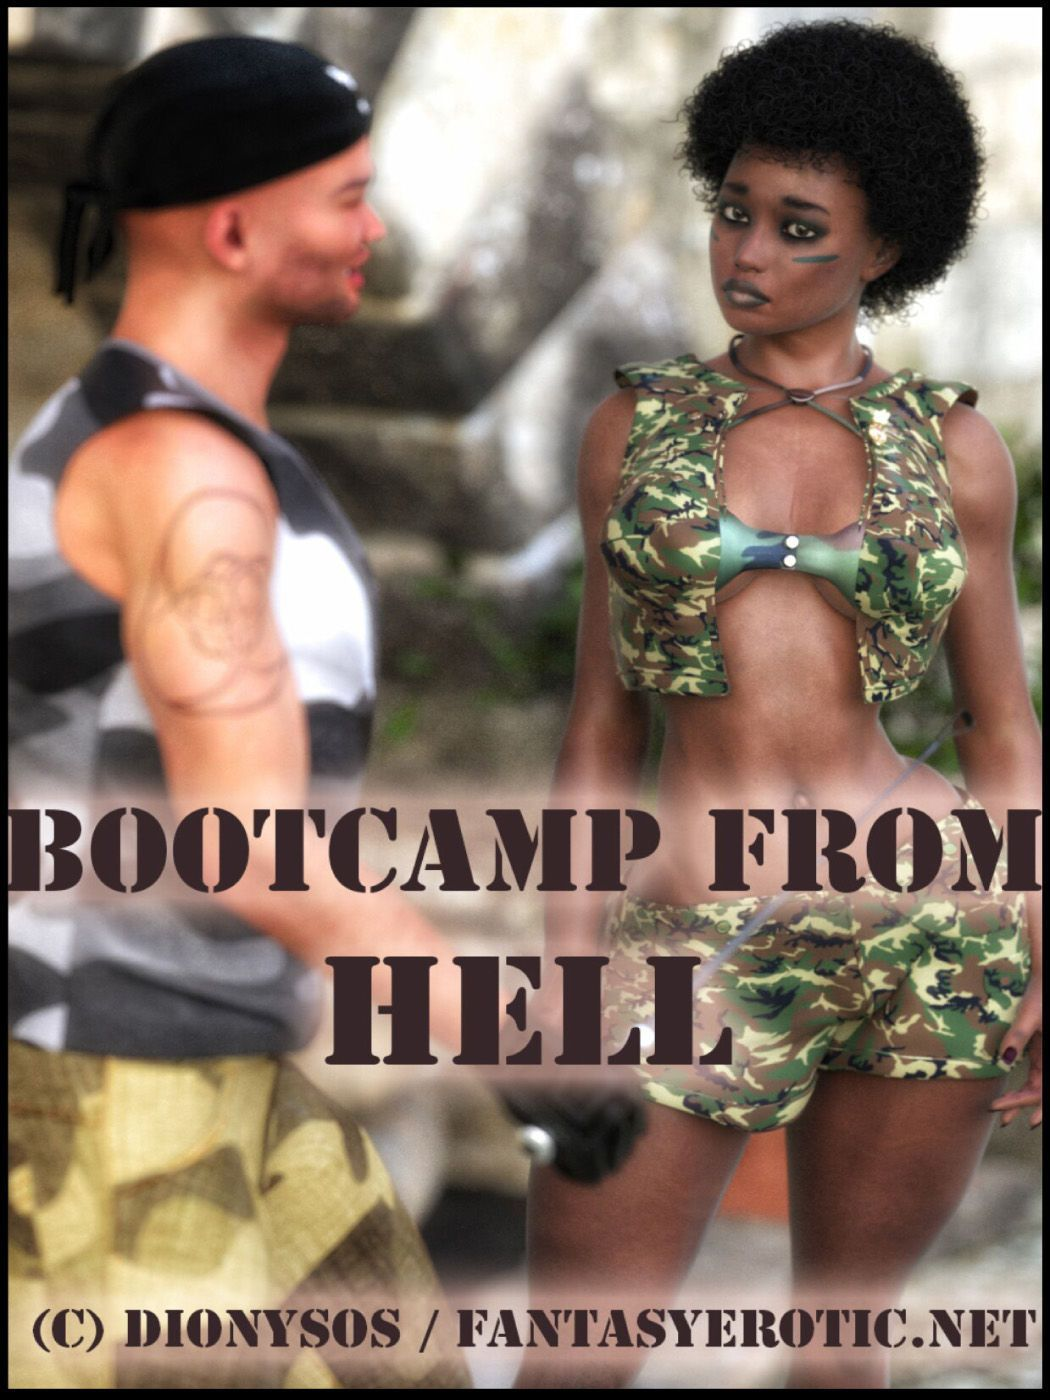 [Dionysos] Bootcamp from Hell